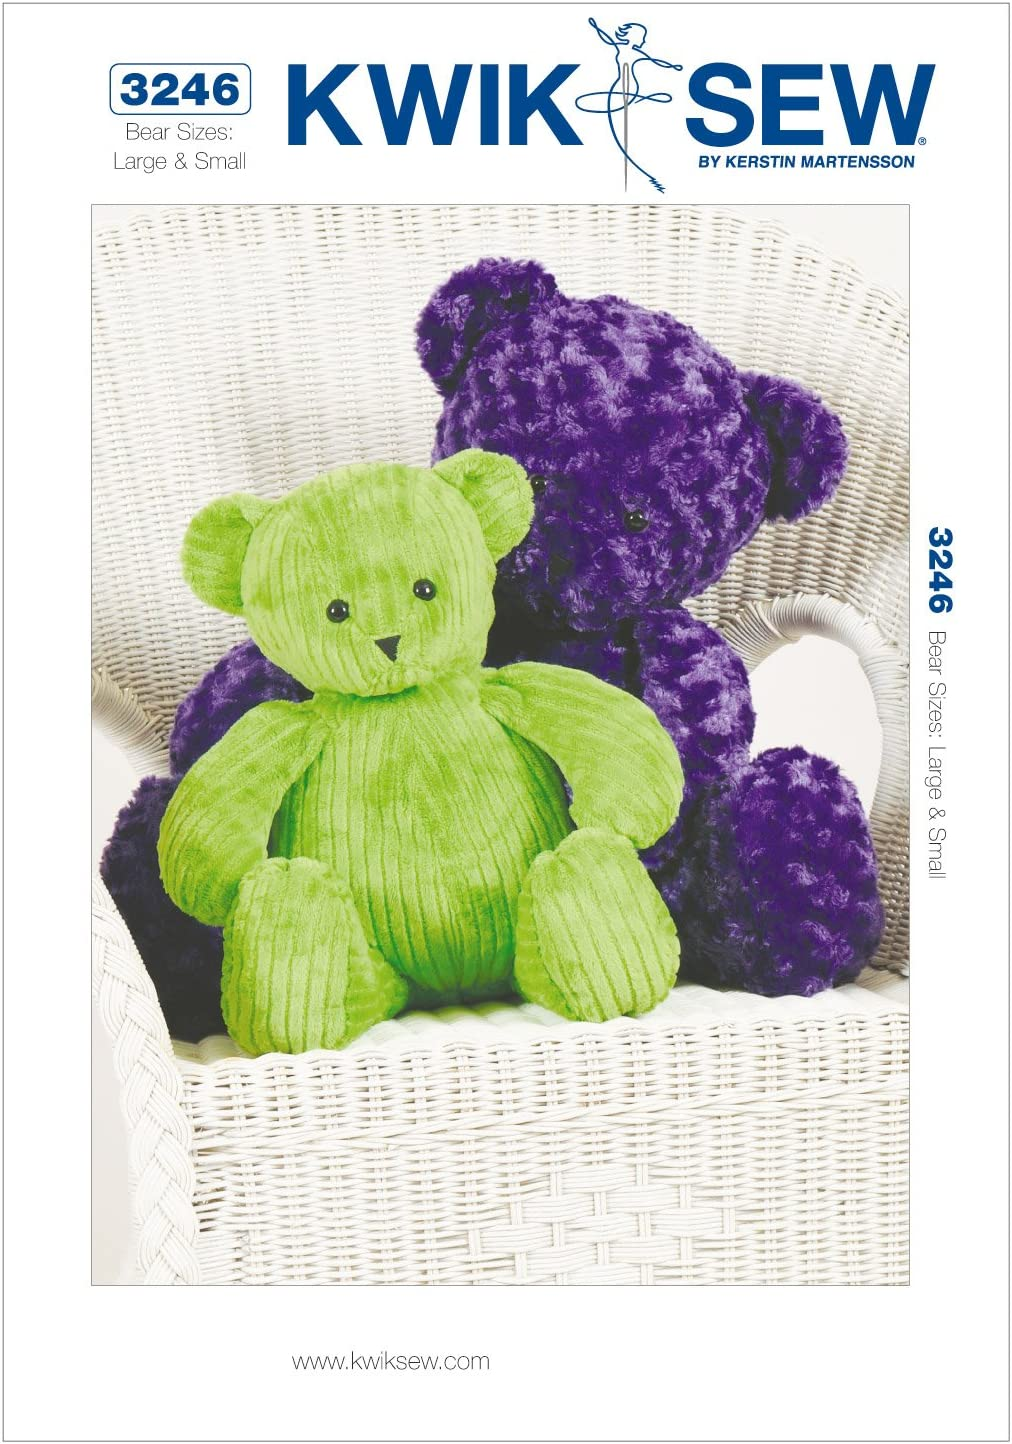 KWIK-SEW Today's only 67% OFF of fixed price PATTERNS K3246OSZ Teddy Bears Sewing Size Pattern Larg